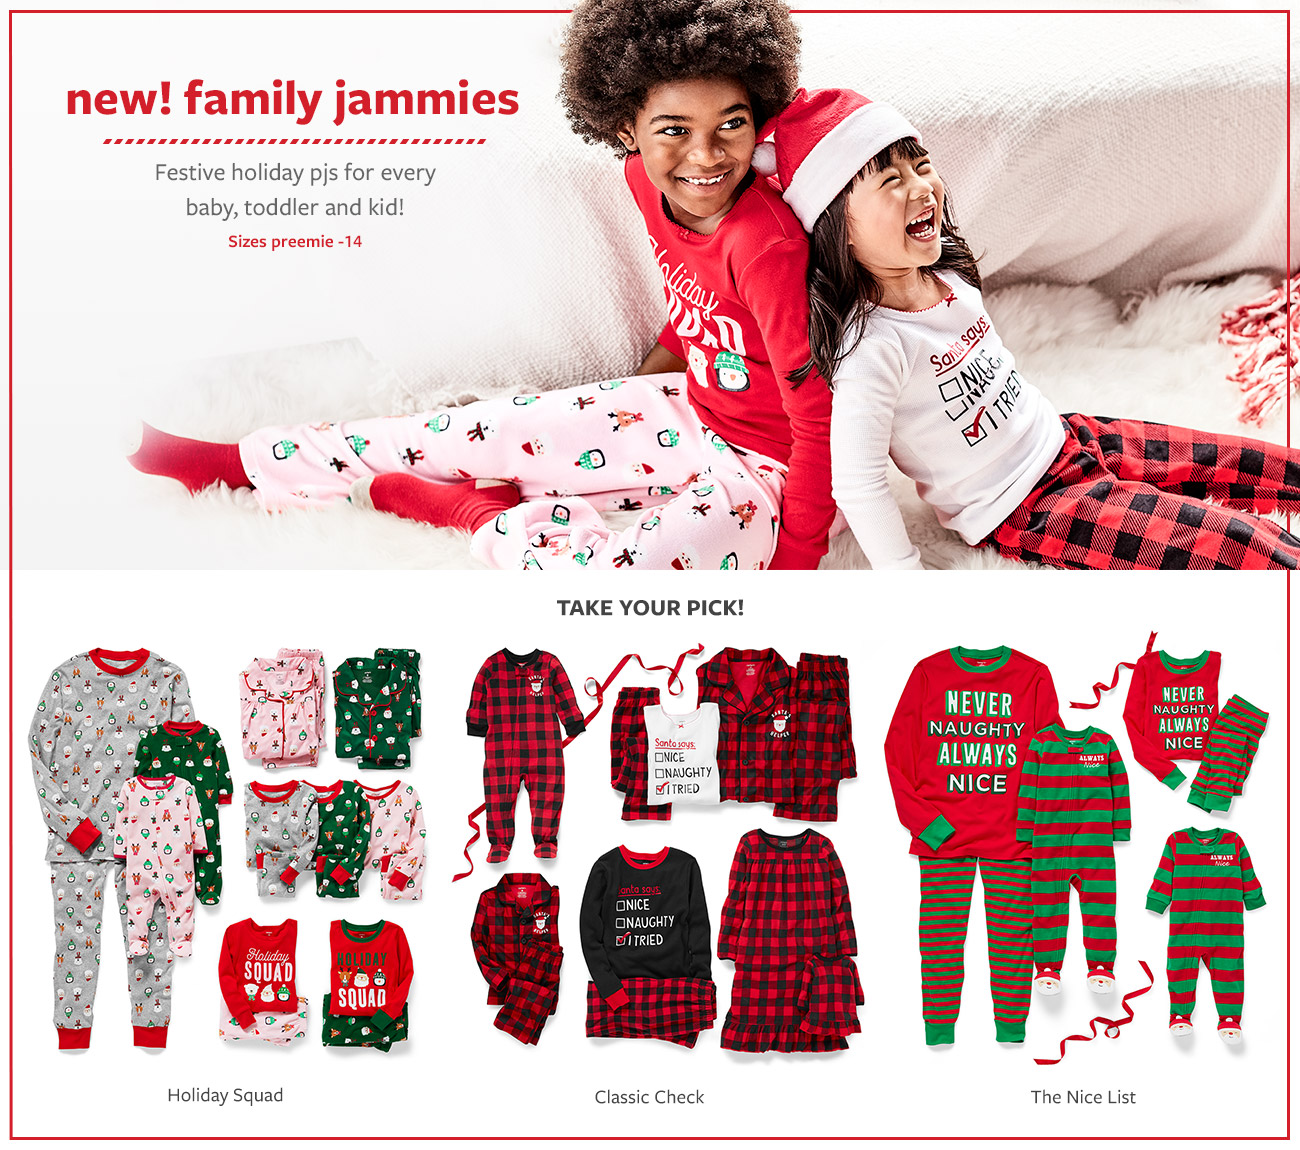 the best gift of all   Sweet babies at Christmas! Now we just need a sleigh for all the cute bodysuits, sets + hats! Sizes preemie-24 month